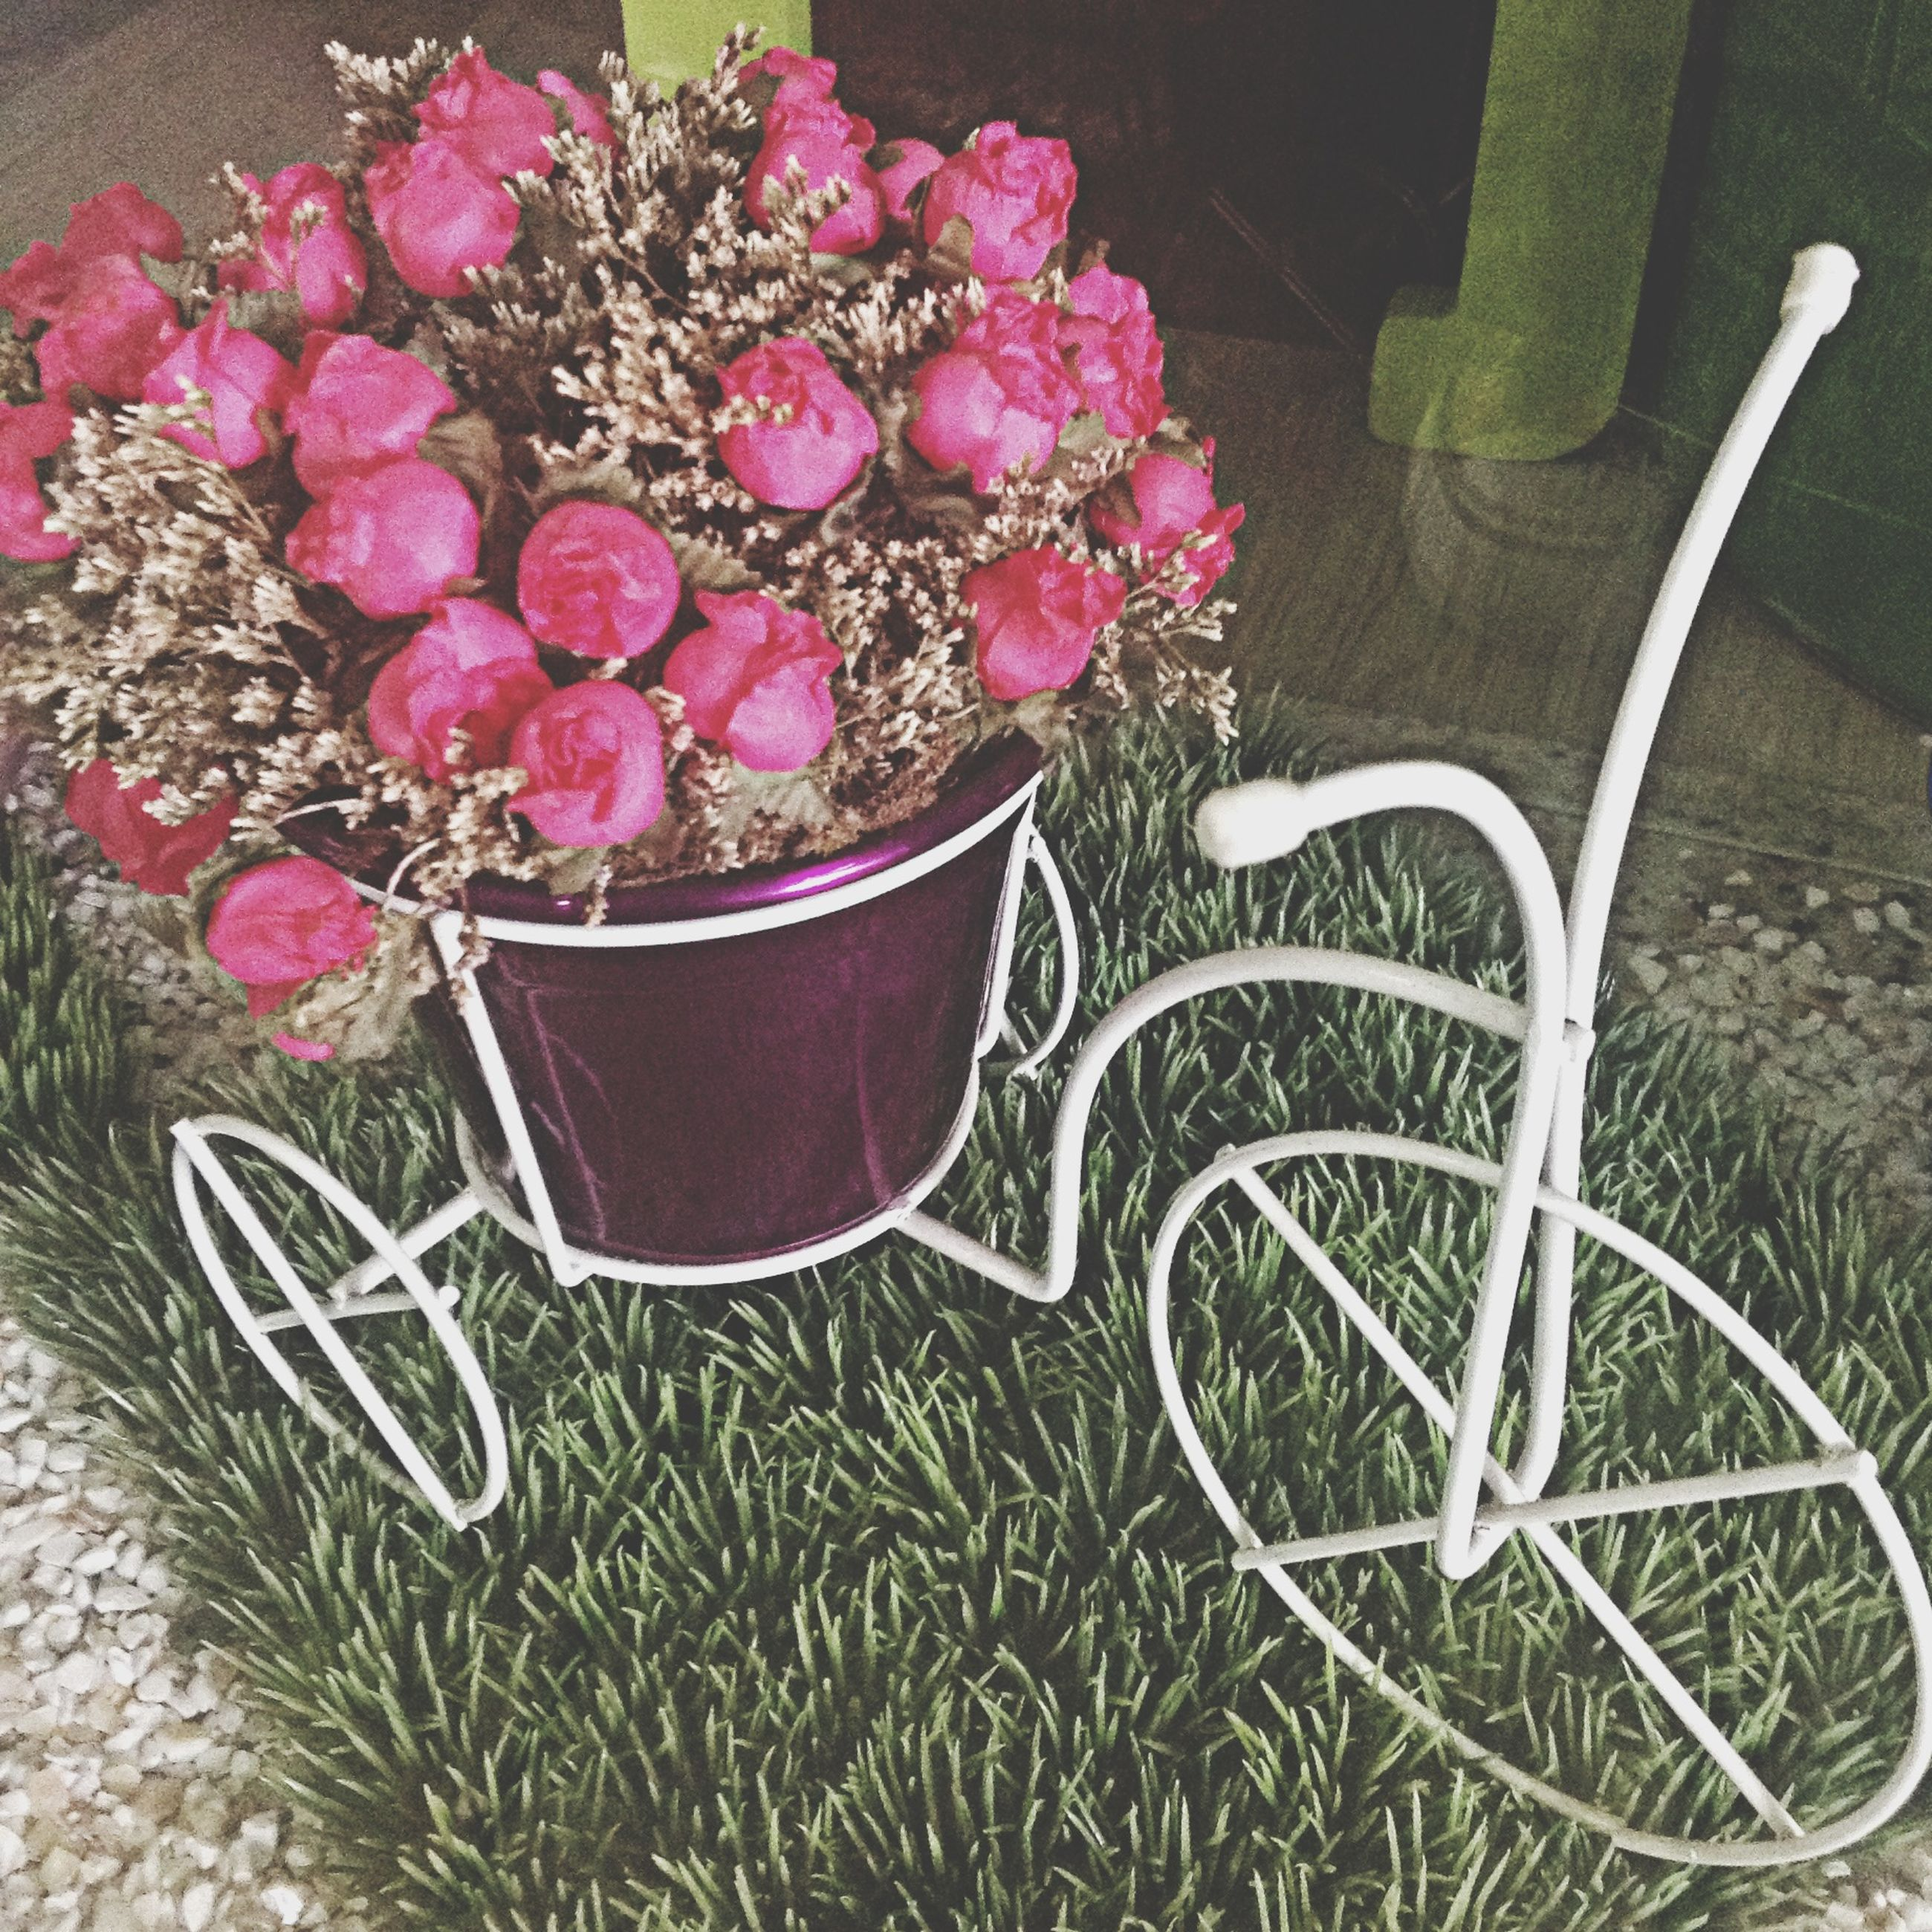 flower, high angle view, plant, freshness, growth, pink color, nature, table, no people, beauty in nature, potted plant, day, sunlight, outdoors, fragility, park - man made space, basket, close-up, petal, decoration